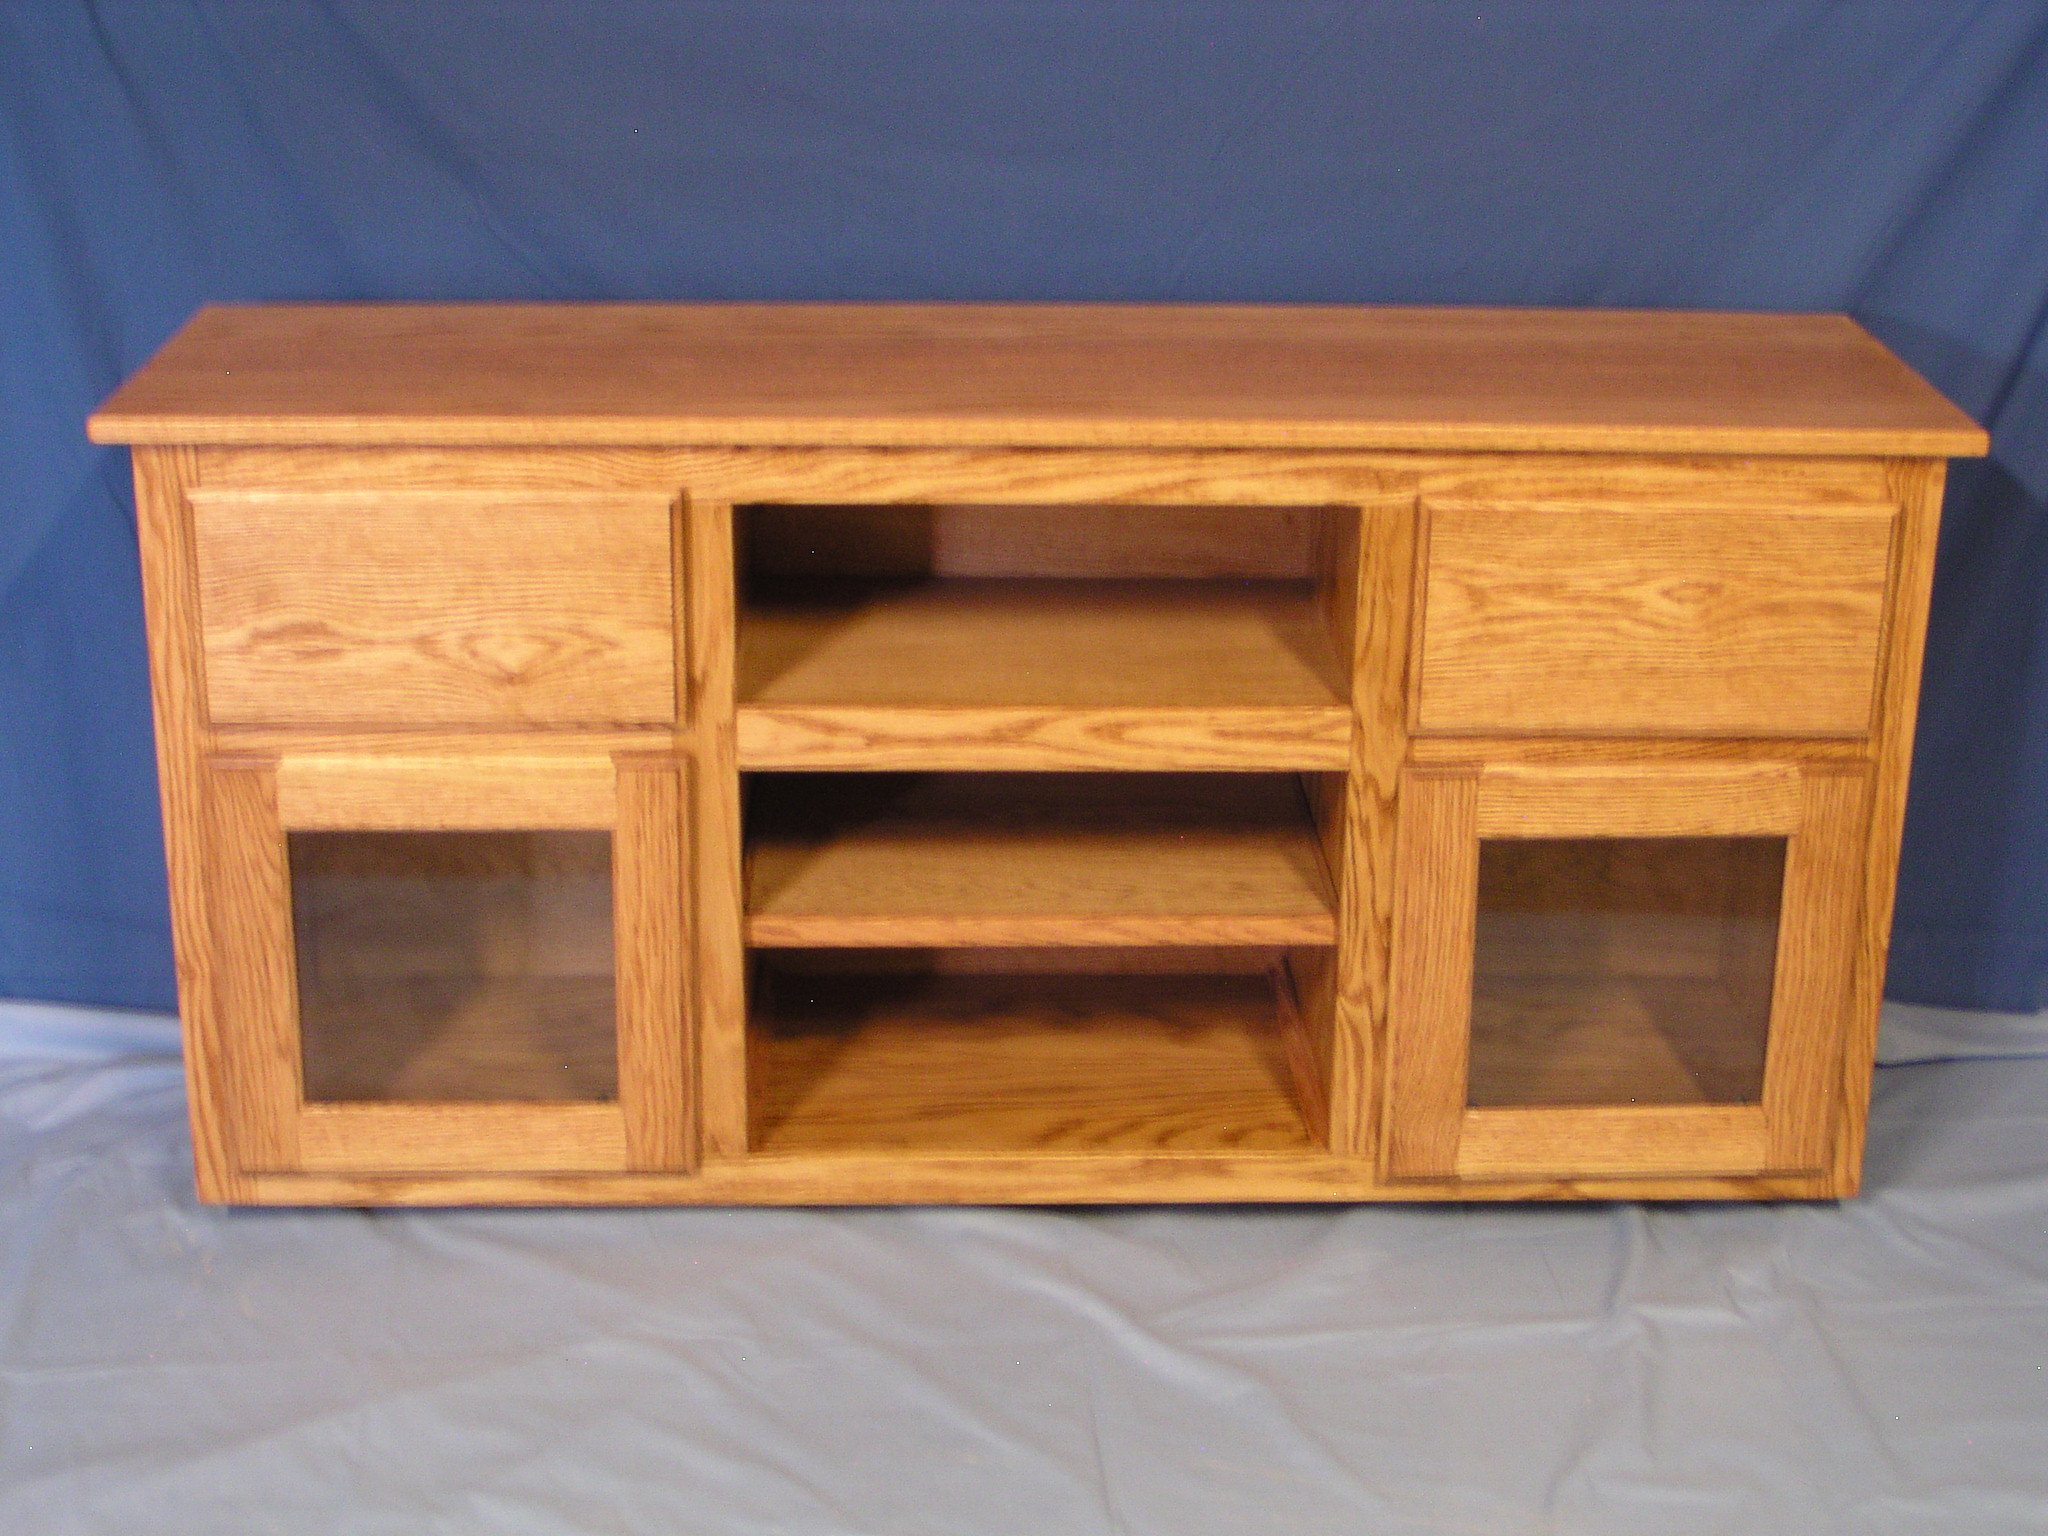 This Custom Made Oak TV / Stereo Console Will Support A Flat Screen TV,